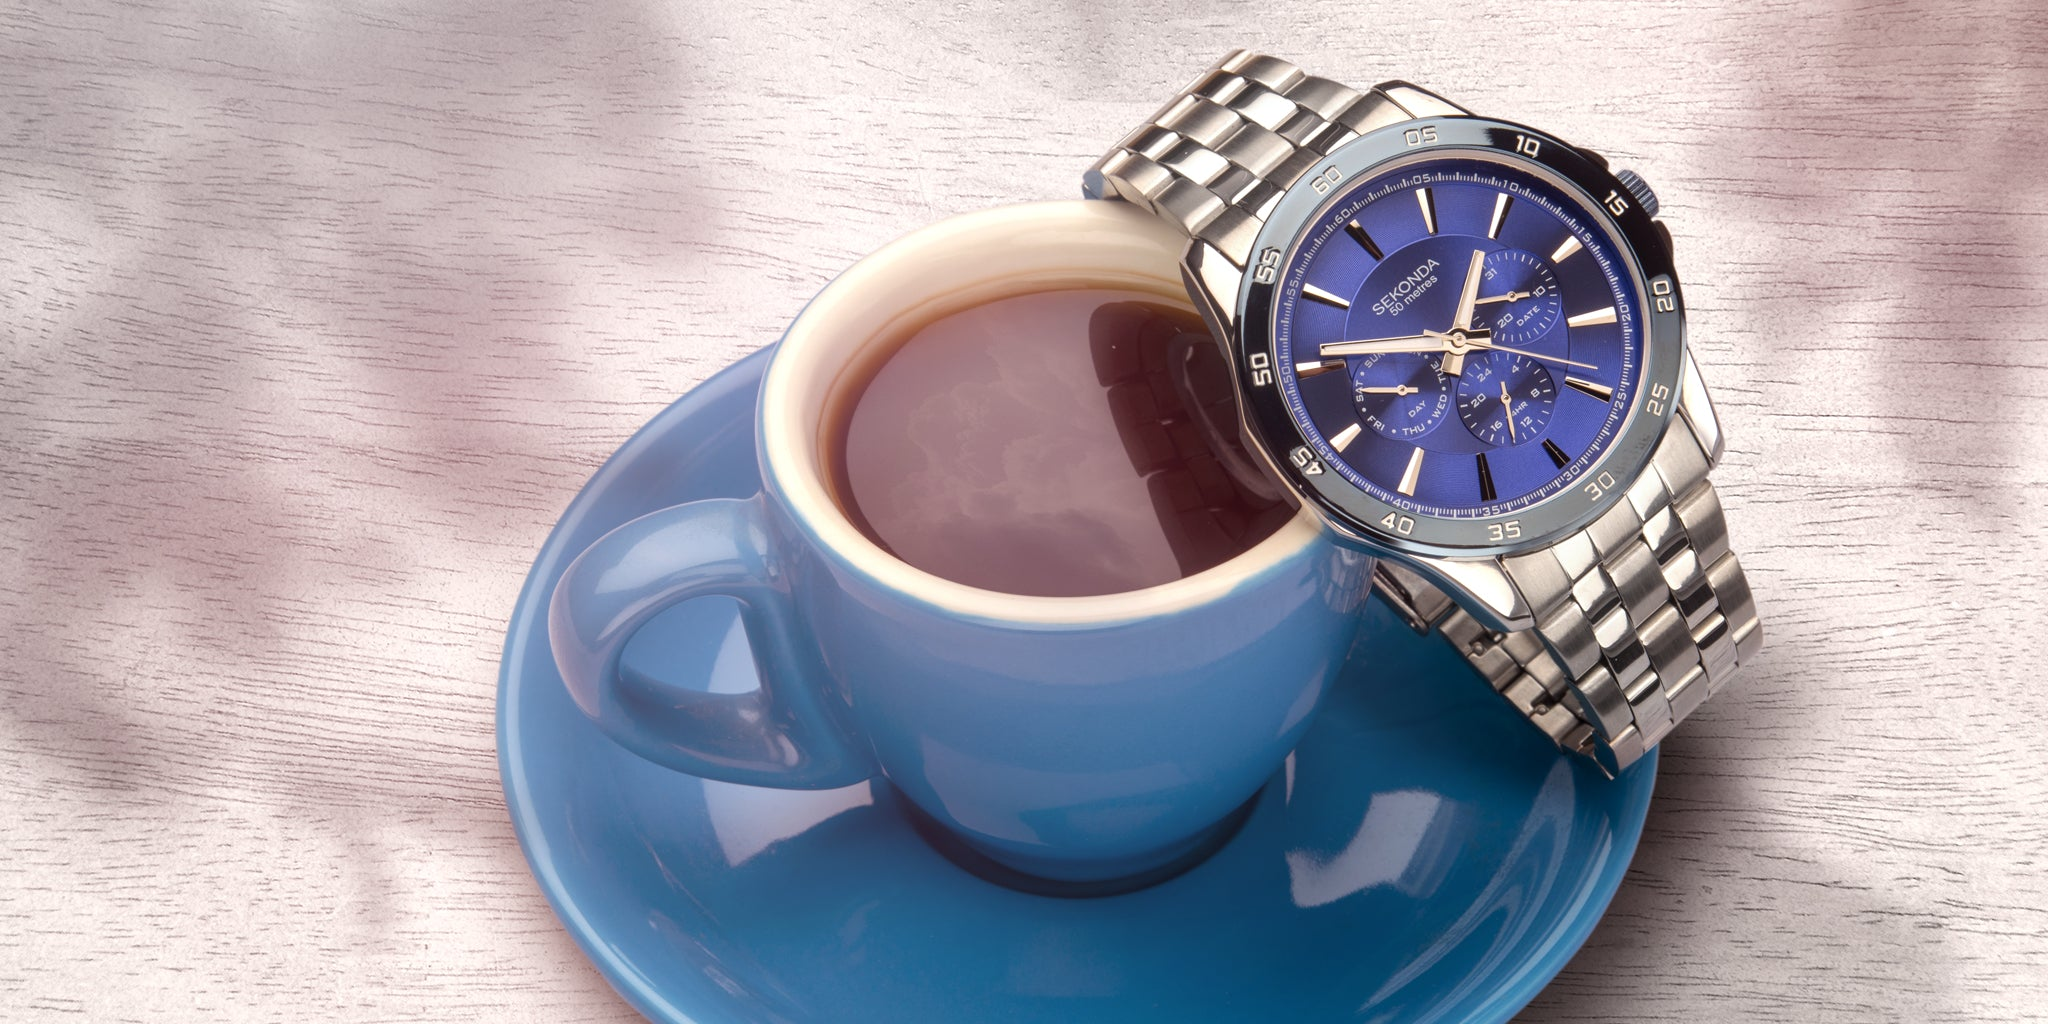 Sekonda 1391 men's watch. The perfect gift for Father's Day